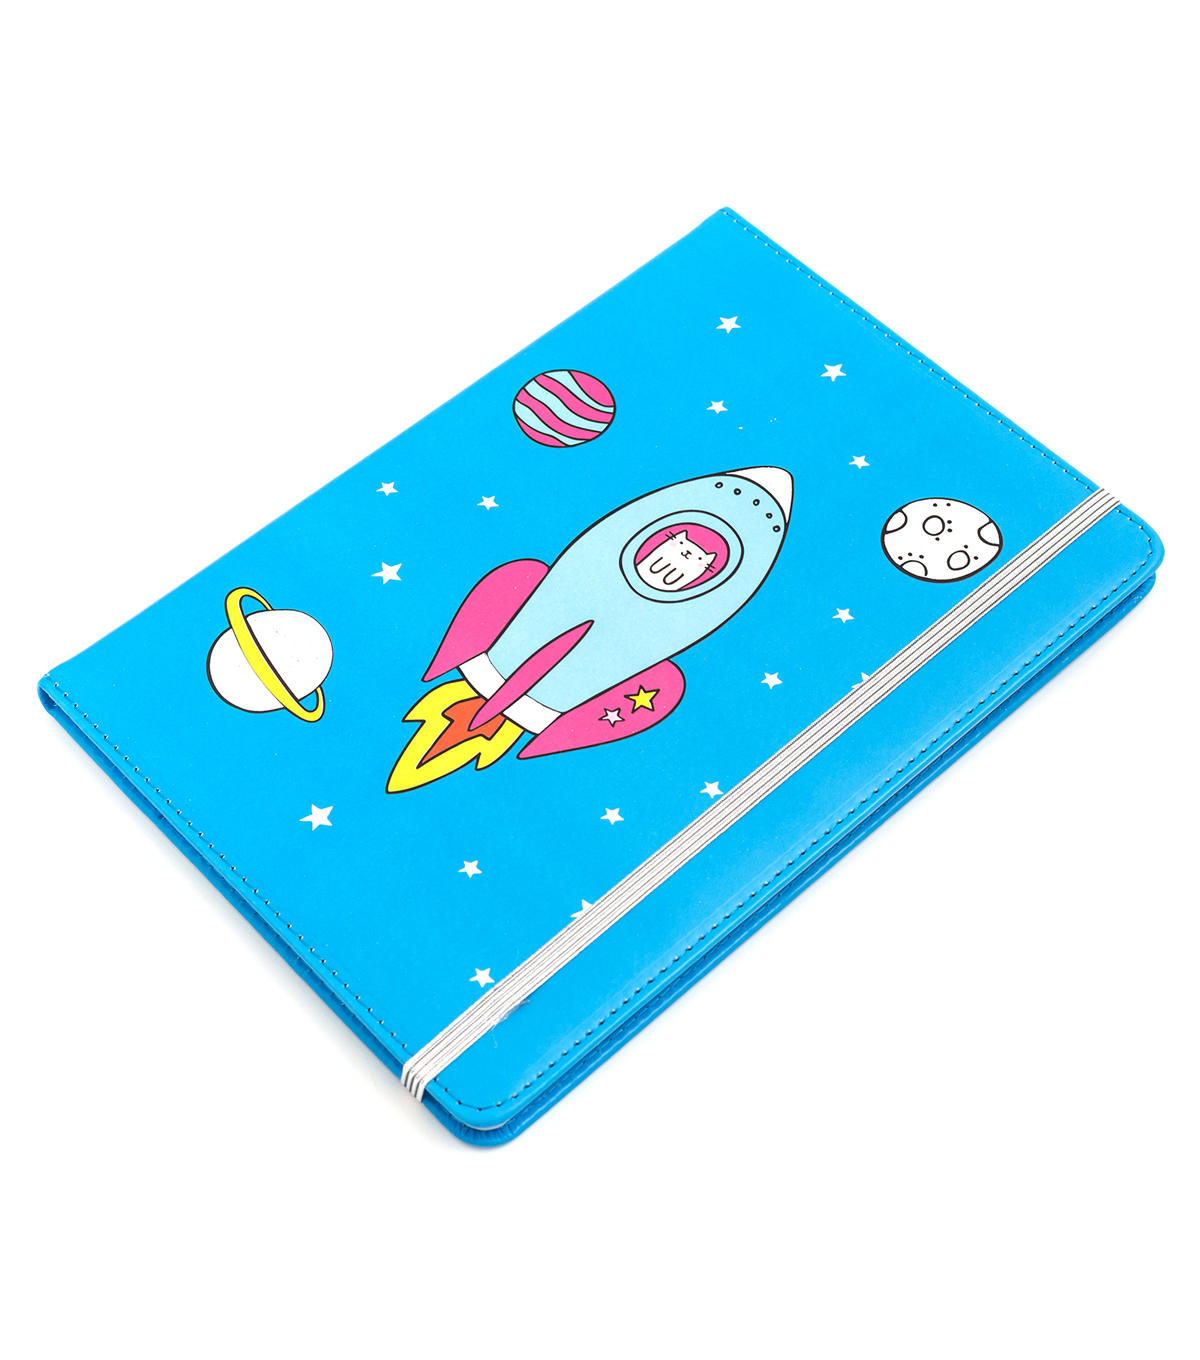 American Crafts Hello Dreamer Journal-Rocket Kitty